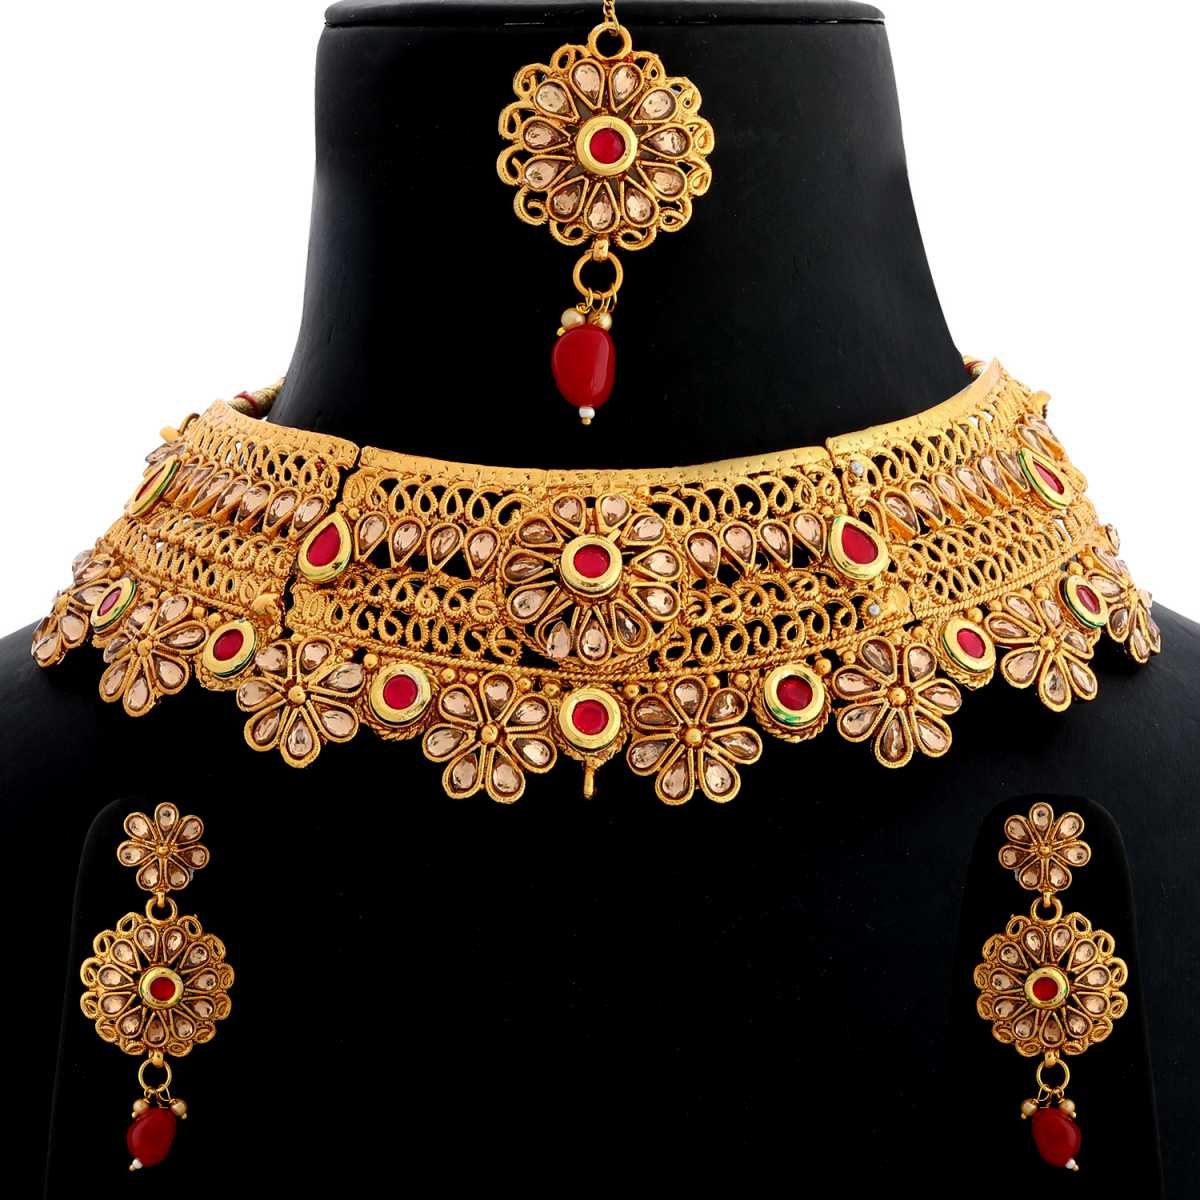 Silver Shine Gold Plated Choker  Traditional Royal Finish Kundan Stone Studded Flower Type Design with Bead Drop  Designer Wedding Necklace jewellery set for Girls And Women